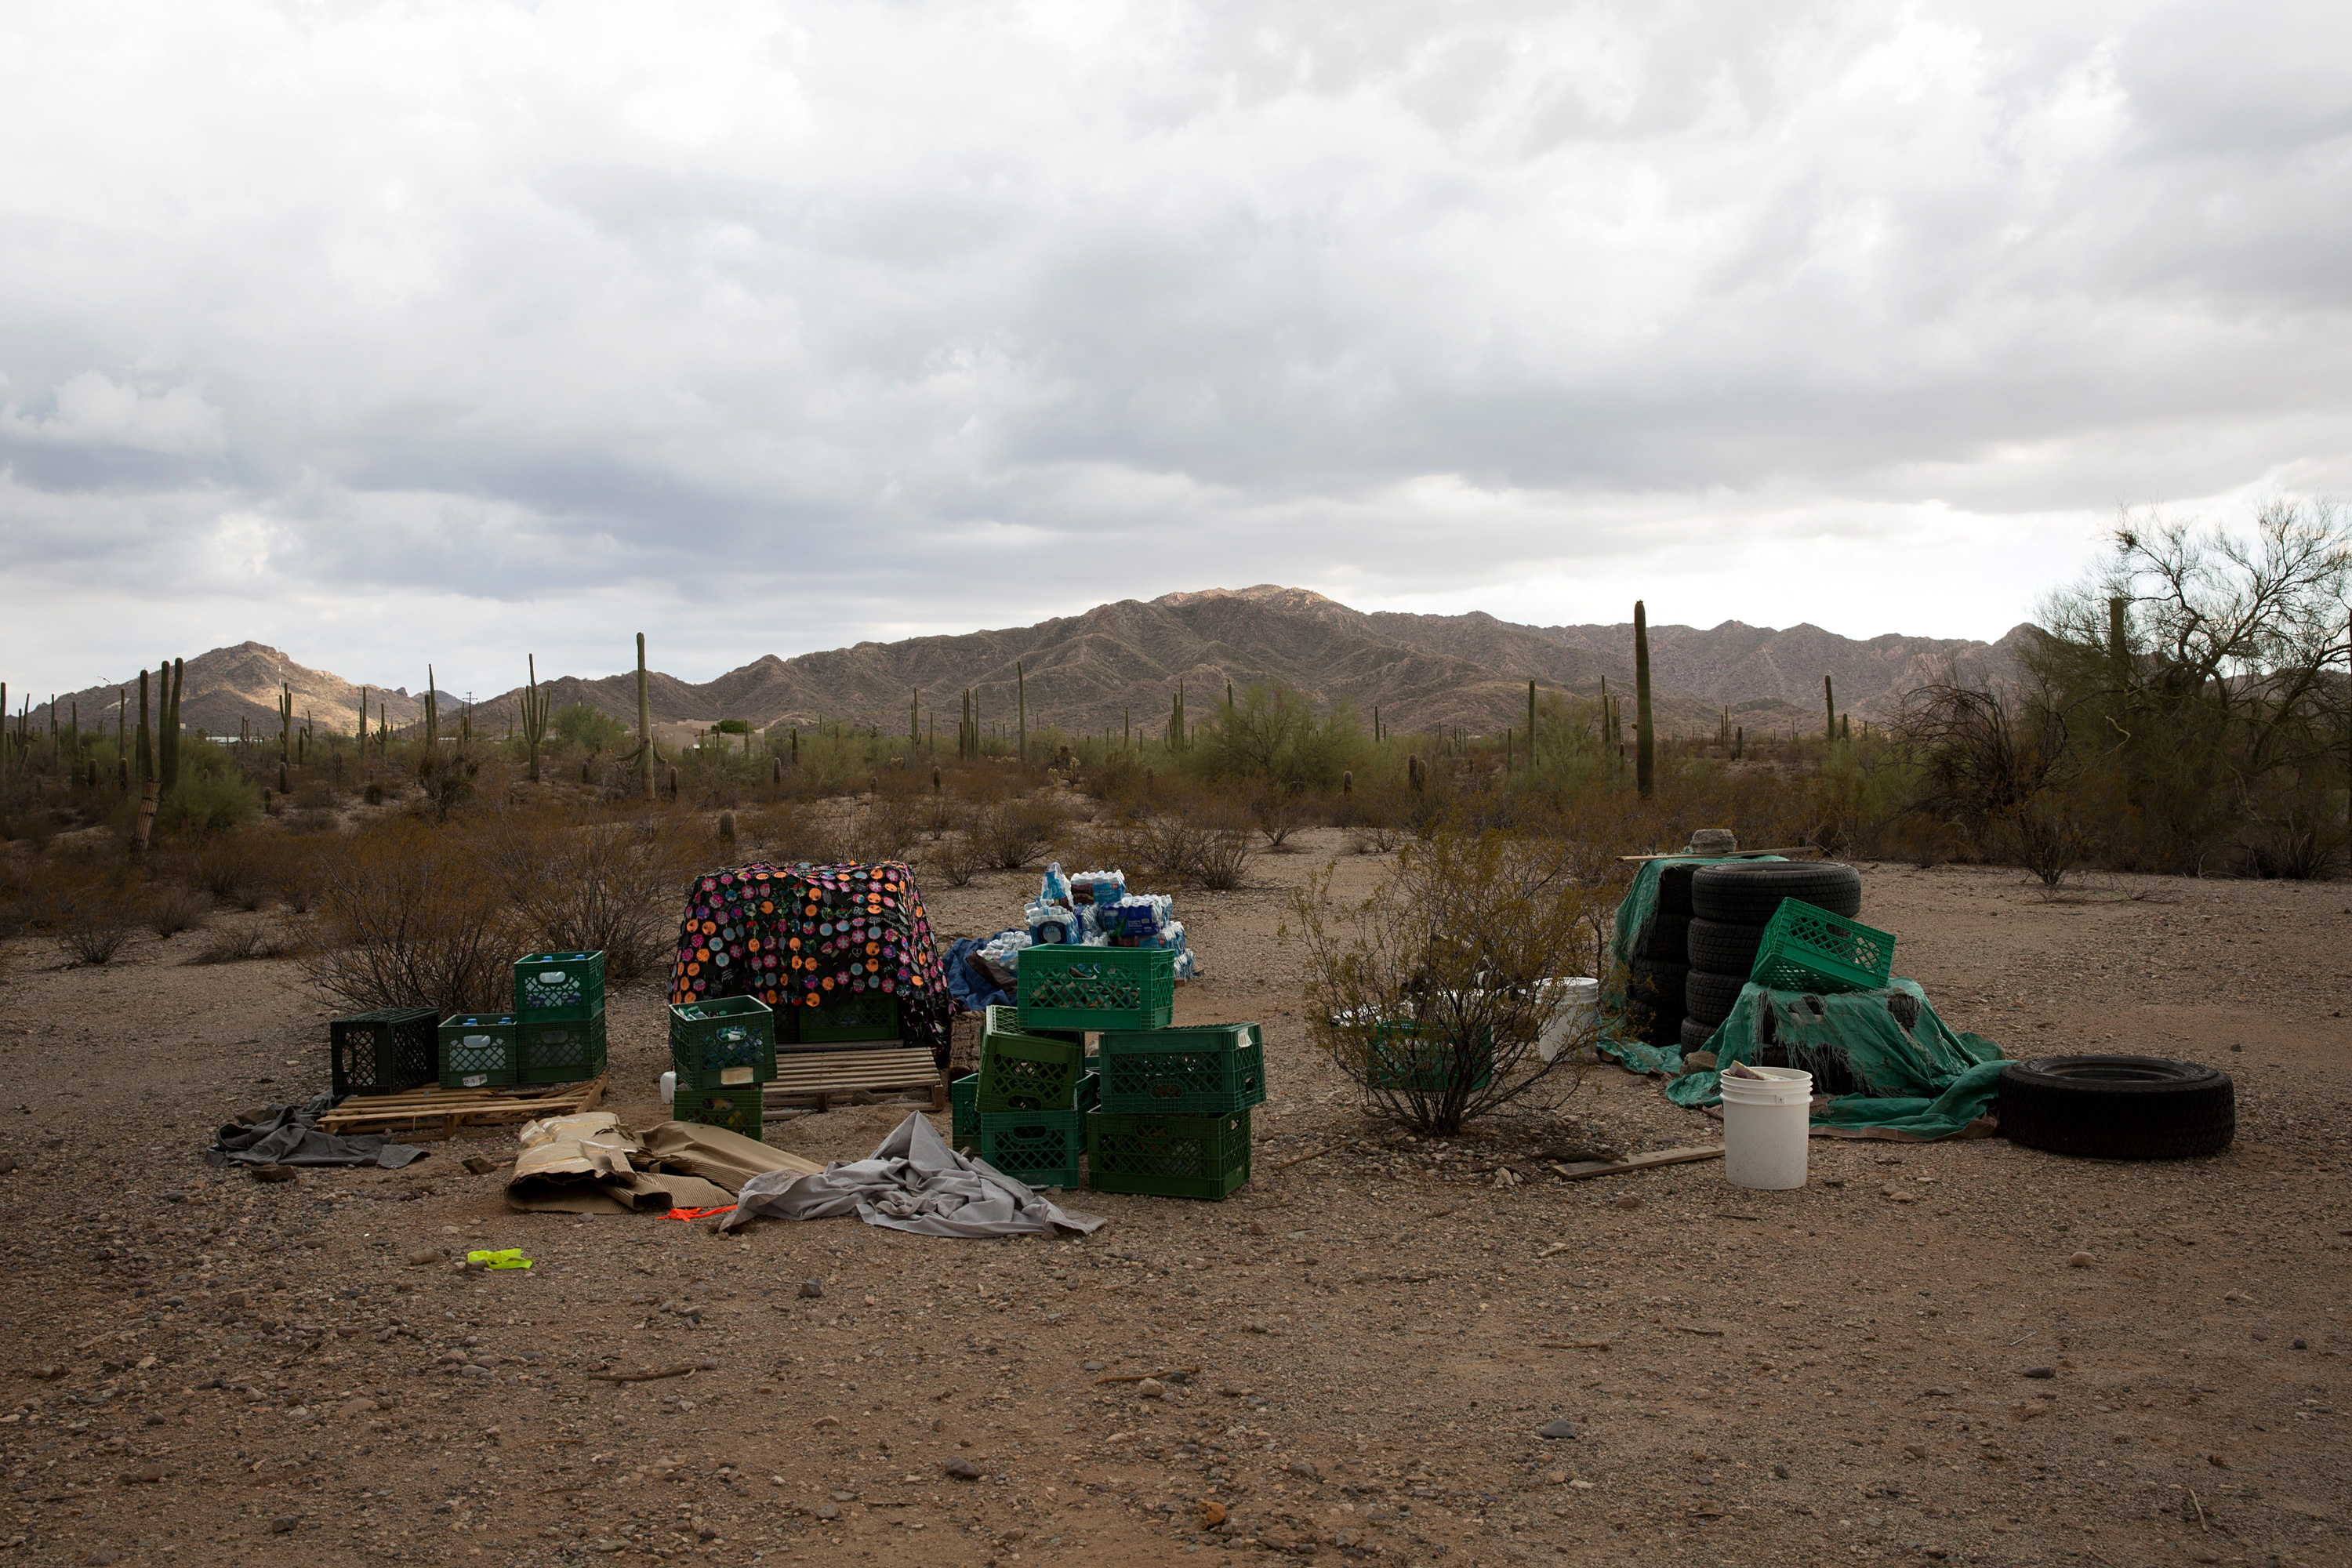 """Humanitarian aid shelter in Ajo, known to groups as """"The Barn"""" and the location where Dr. Warren was taken into custody by CBP."""